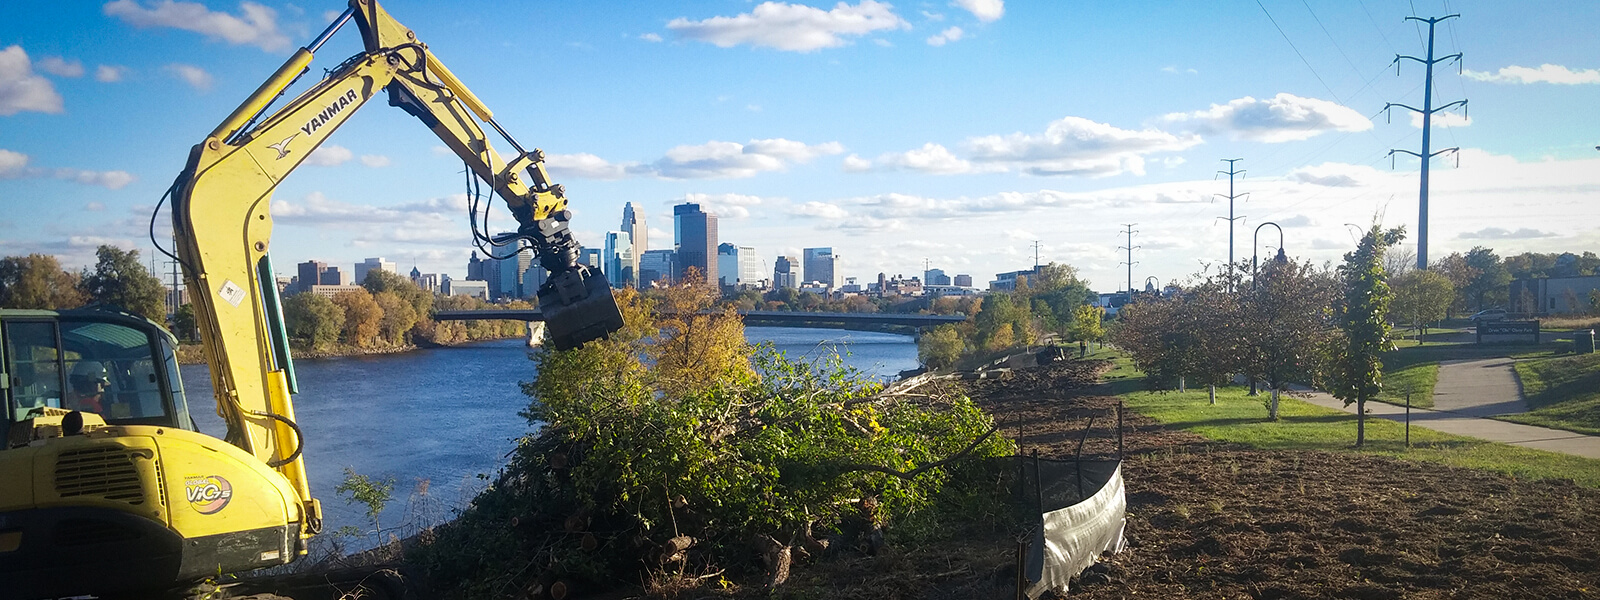 excavator clearing trees near river